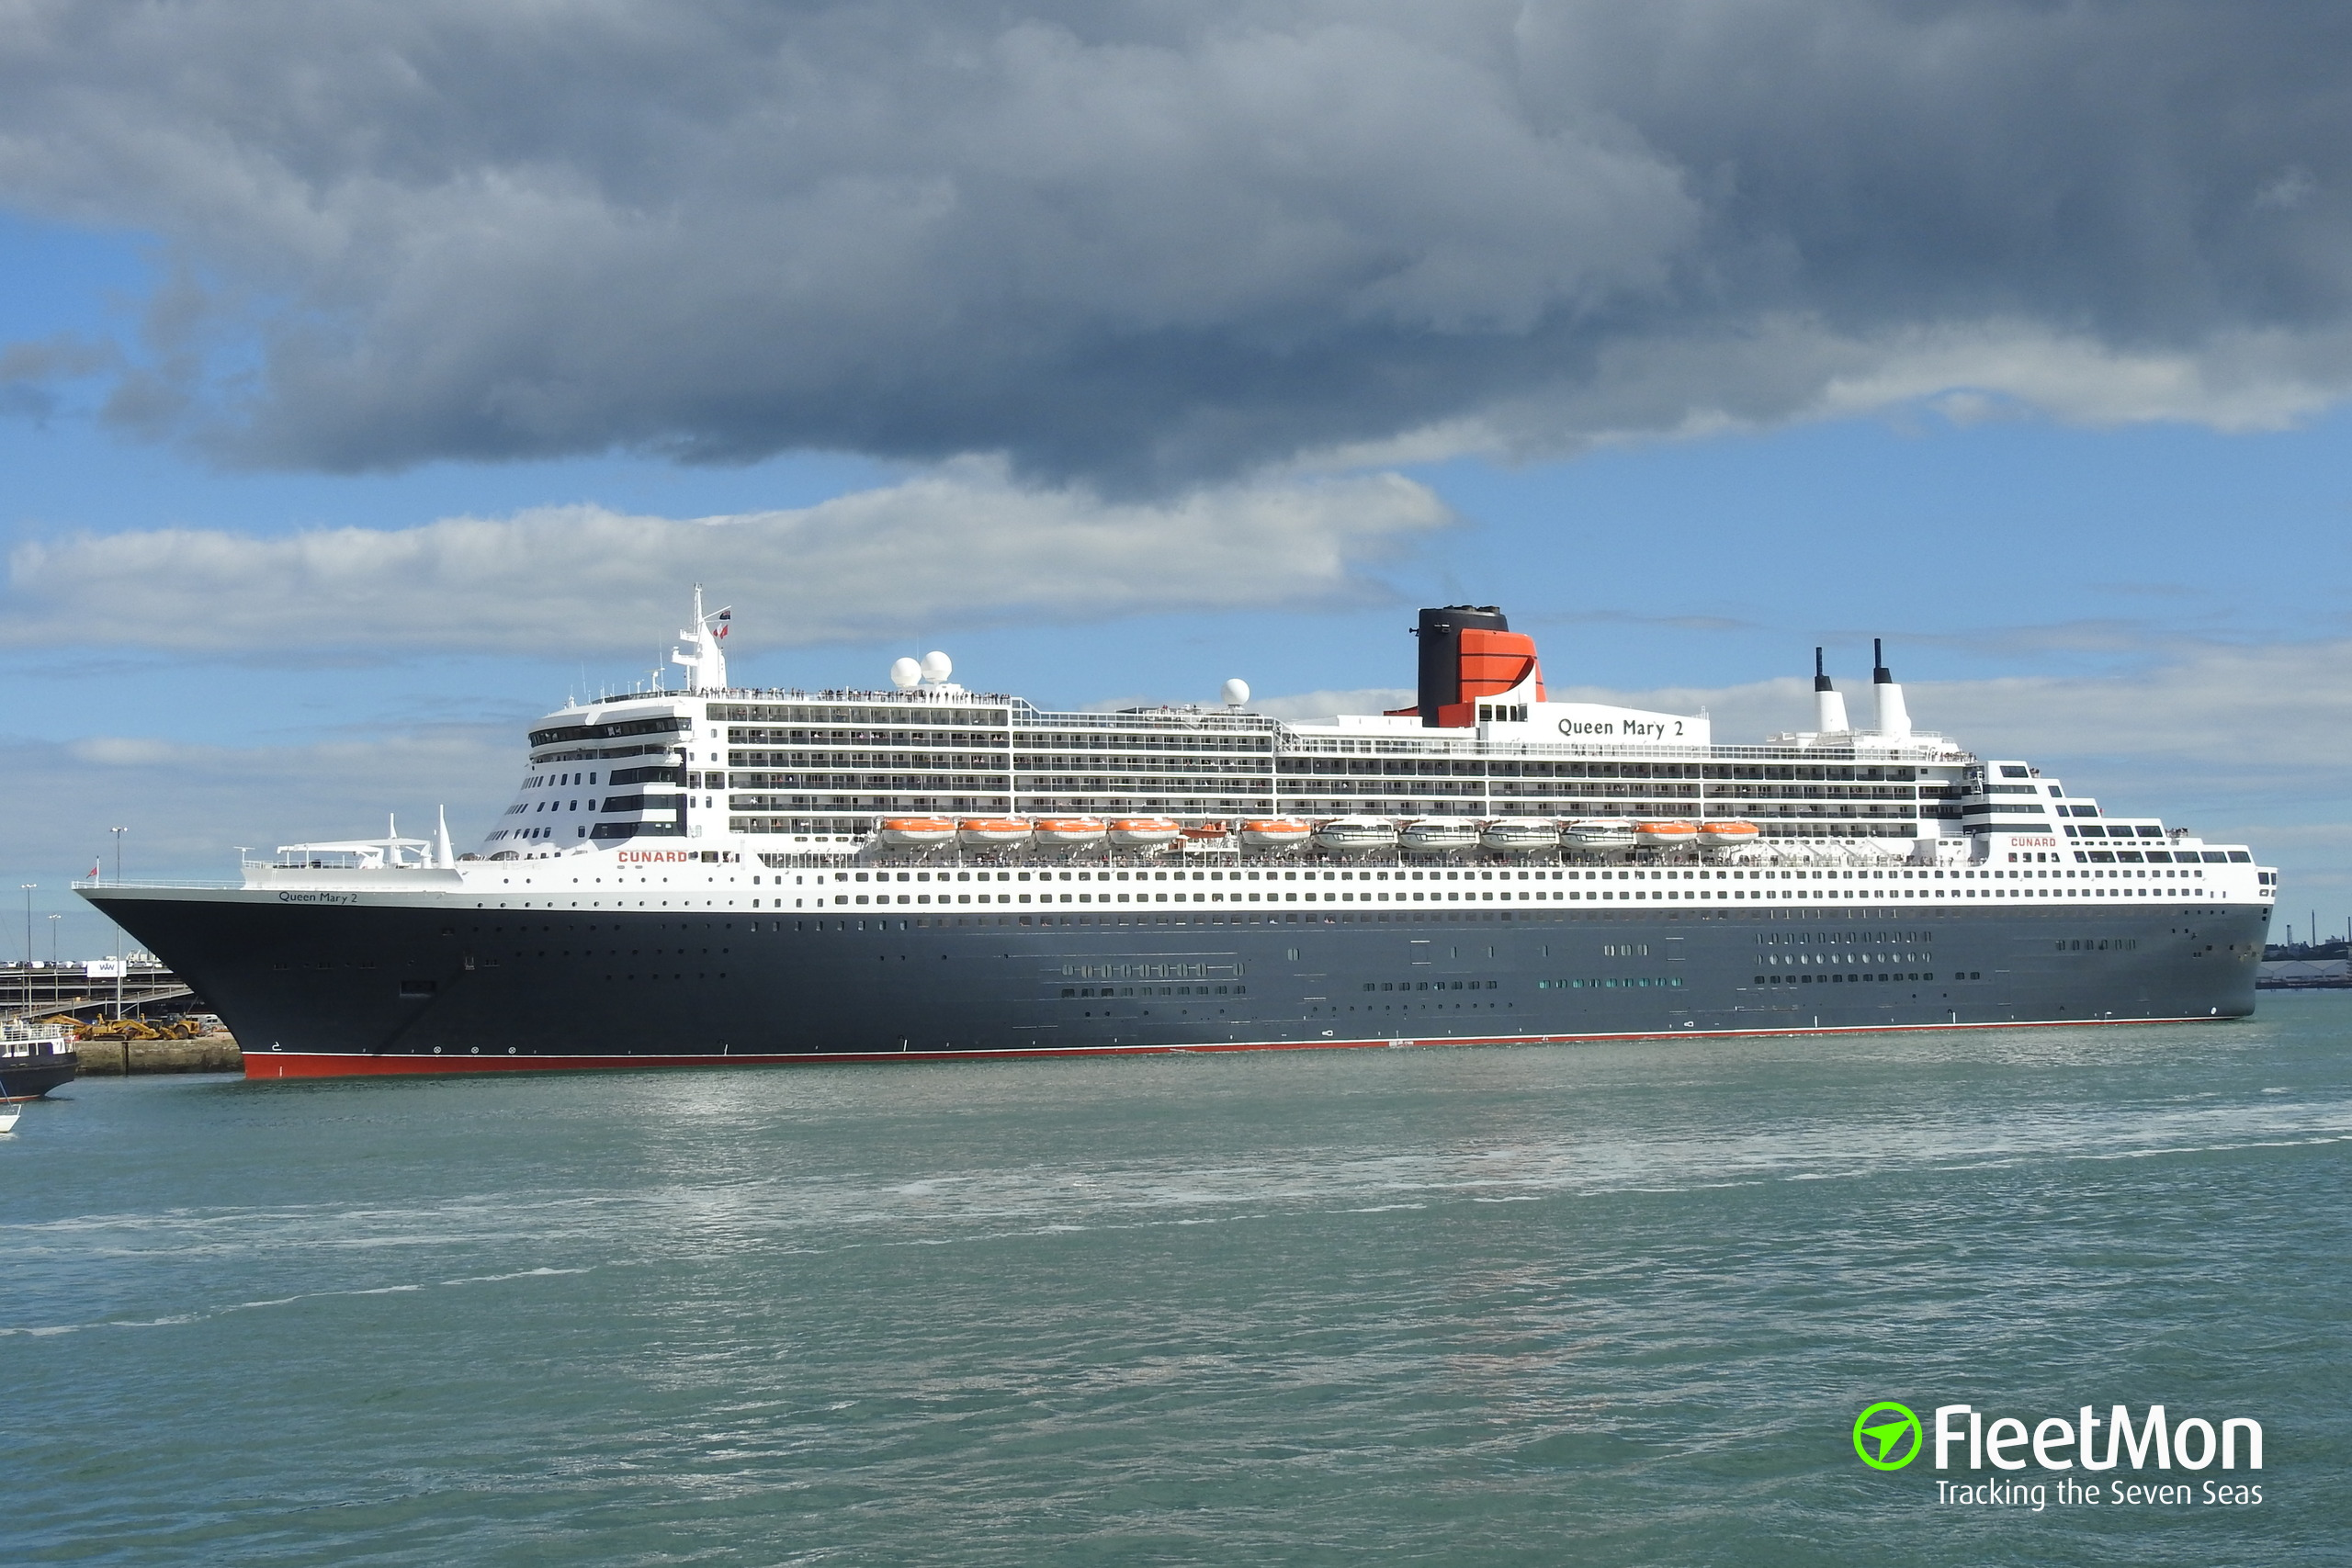 Queen mary 2 photo by fleetmon shipspotter joern